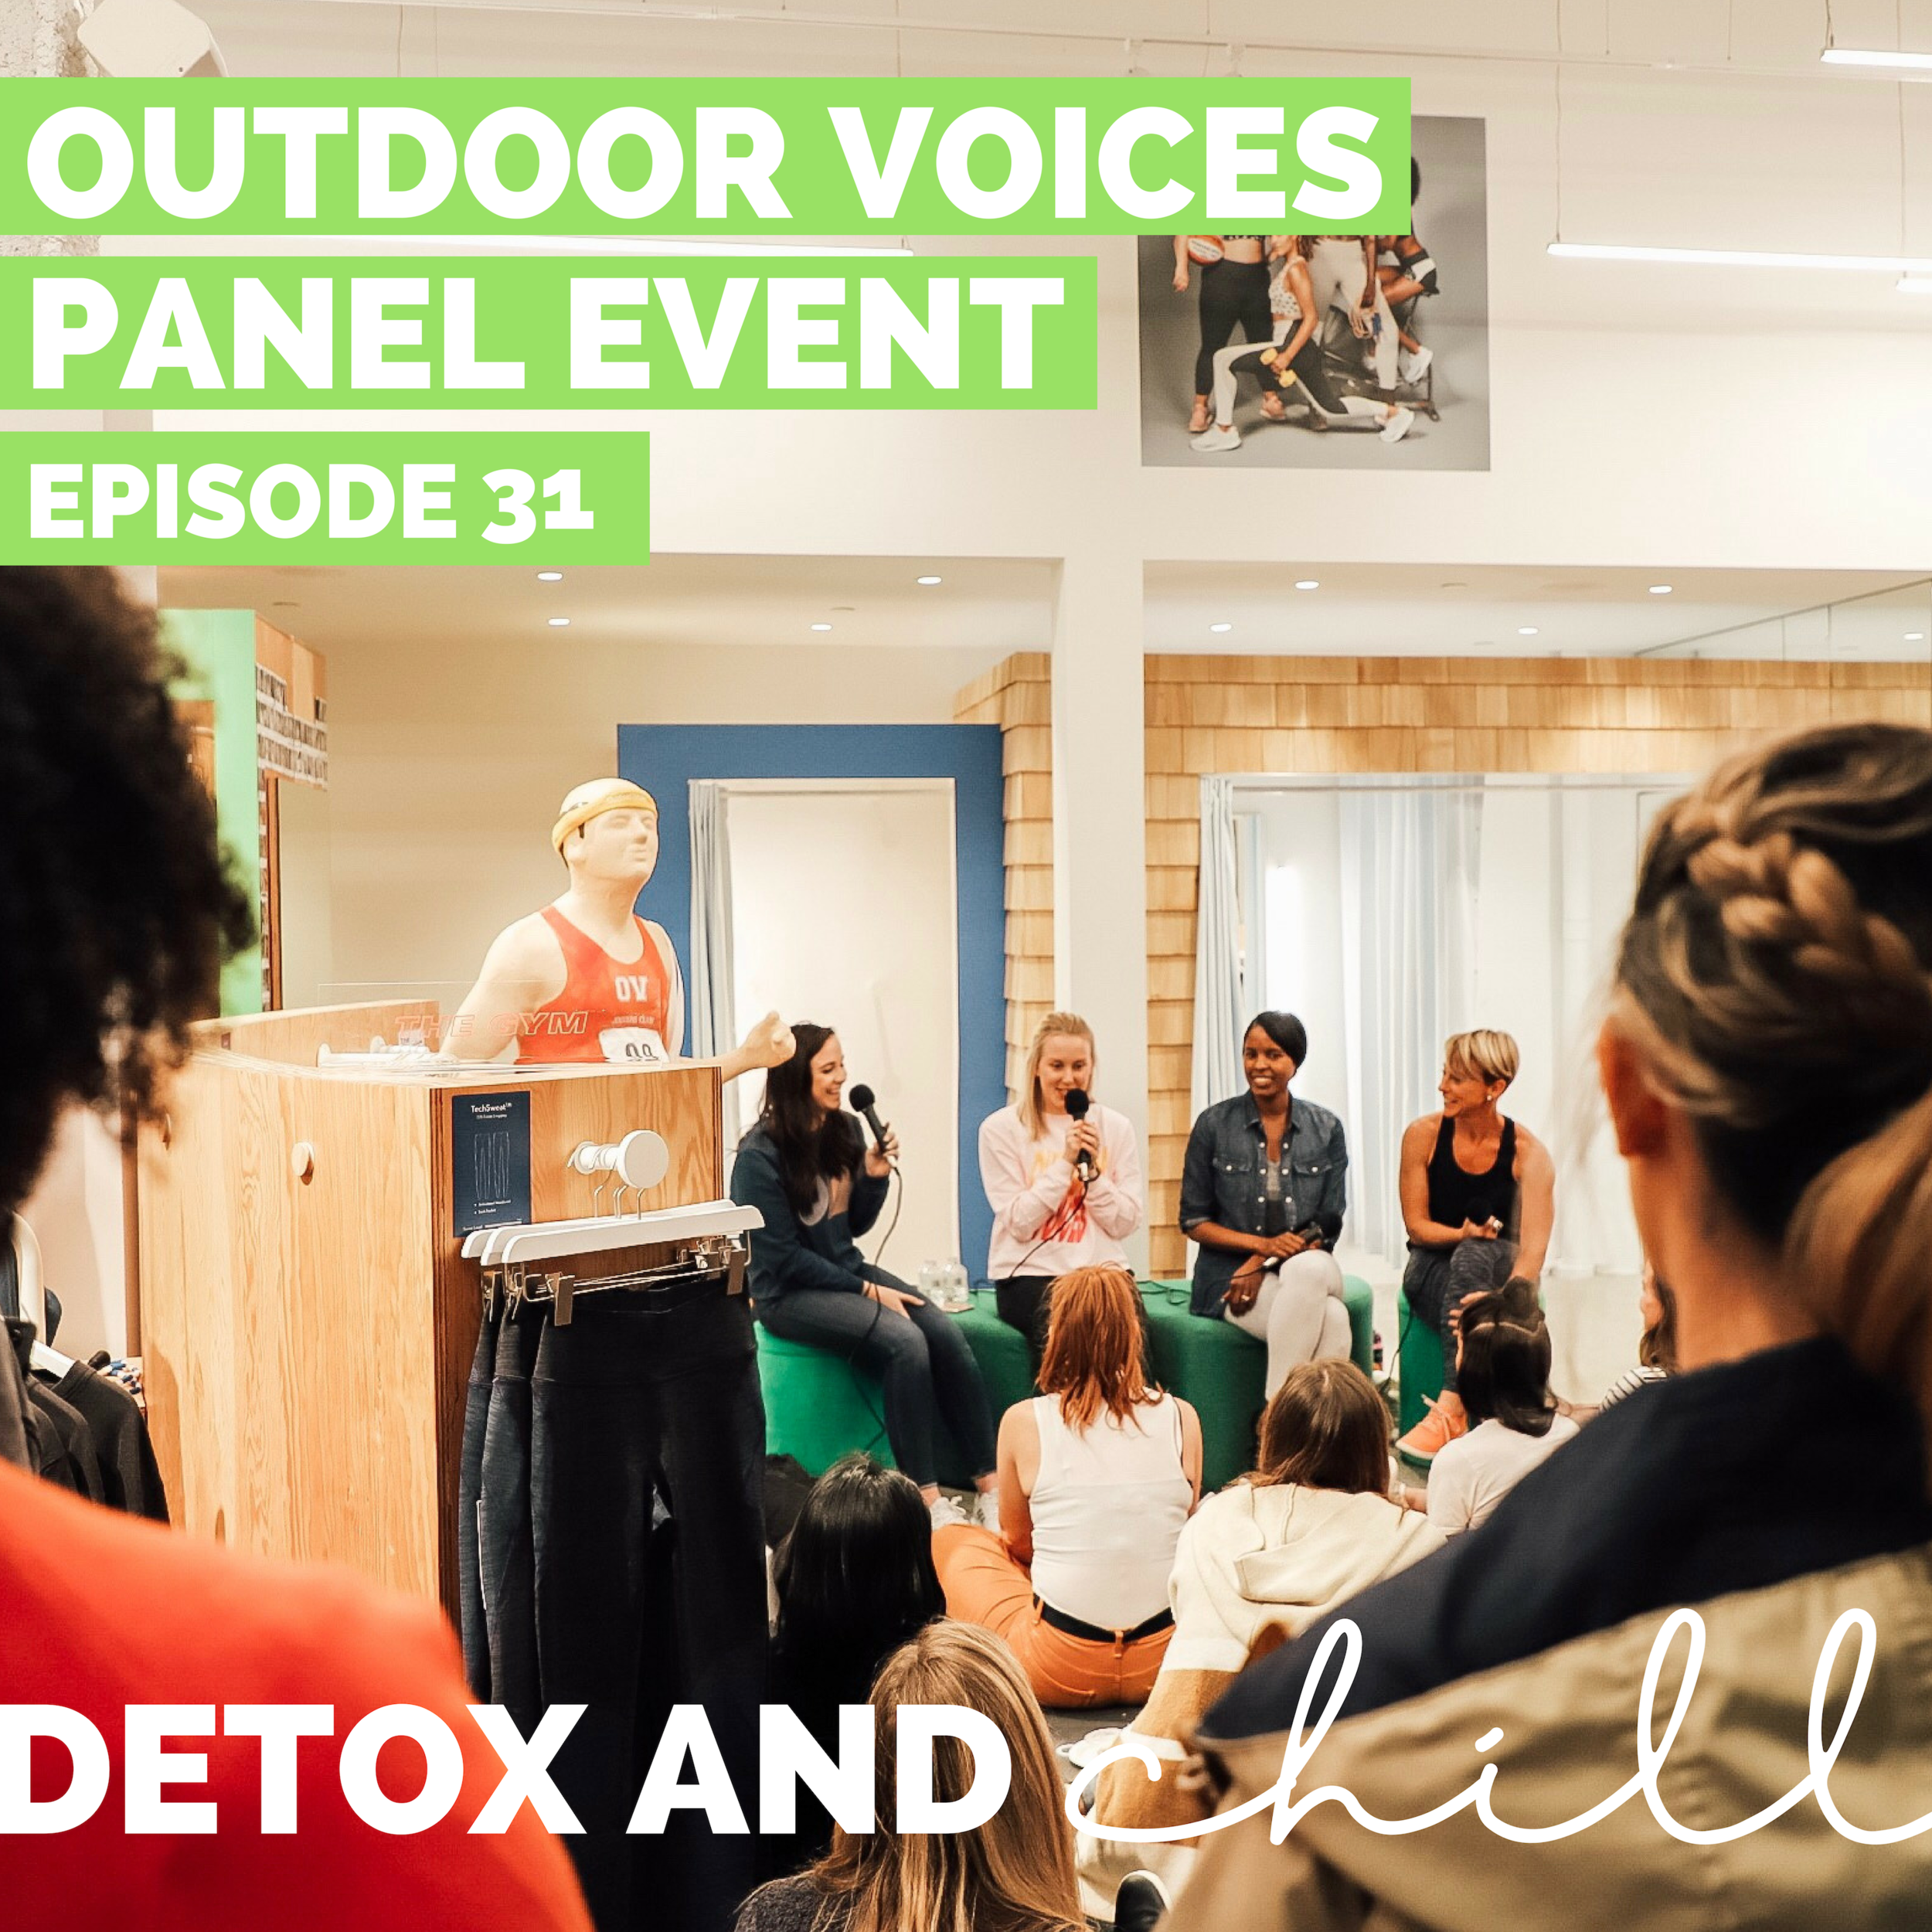 Episode #31: Outdoor Voices Panel Event ft. Wendy Williams and Ciara Clark // Managing Stress in the Millenial World - We know we've talked about in leading up to, and after the event, but we TRULY cannot express how grateful we are to have had our first live event at the amazing Outdoor Voices, in Boston.One thing that we both have dealt with while balancing the pod and our 9-5's (and seriously, EVERYONE deals with in today's world) is STRESS. And let's be honest, we're not going to prevent stress in our lives, so we wanted to bring a panel of amazing women who could talk to us about how to MANAGE our stress better in our day-to-day lives. This episode is a LIVE version of our podcast…which was totally new and crazy for us! We usually are in our comfy clothes recording in Beck's apartment, so this was definitely something different. We absolutely LOVED it - so be on the lookout for the future as we plan some more events in the new year!We couldn't have chosen a more amazing and inspiring panel. Wendy Rue Williams and Ciara Clark talked about how they balance their crazy schedules and still make time for themselves. We asked them some tough questions and they gave us some great tips on self-care, readjusting for pivotal moments in our lives, and making an impact in our corporate jobs.We have to give the BIGGEST shout-out to our amazing sponsors for this event. The Oat Shop, Healthy Truth Foods, and Eats by Chloe came through with amazing treats. And of course, thank you to Outdoor Voices for the amazing space to all come together <3.We are SO honored and appreciative to every amazing lady who came out to this event, and we are so excited to hear what you think. We'd love to continue this conversation in our Facebook group and on Instagram. Our Facebook group is a safe space for anyone who joins, so don't forget to check us out there. Just search *SUPER EXLUSIVE* Detox & Chill Podcast Group. As always, don't forget to follow along with us on Instagram (@detoxandchillpodcast) and join our Facebook group. We love you!Xoxo,Meg & Beck